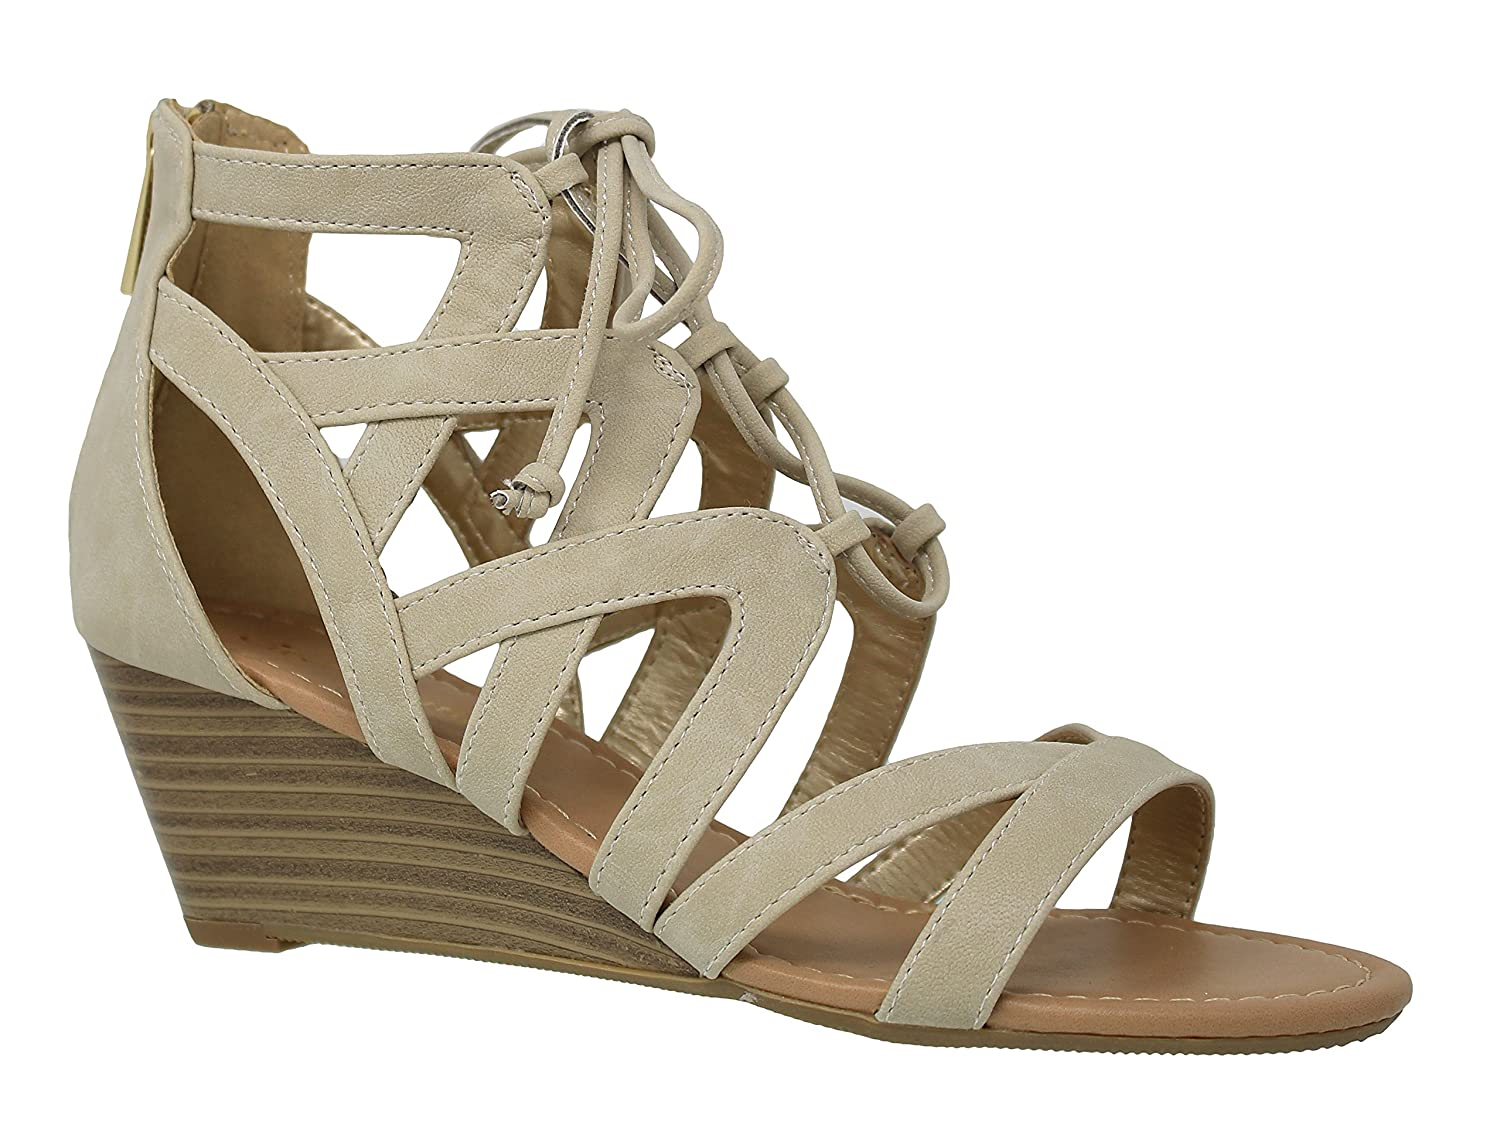 MVE Shoes Women's Casual Peep Toe Mid Heel Wedges - Cute Open Ankle Lace up Sandals - Fashion Design Cutout Wedges-Sandals B079C76534 8.5 B(M) US|Ice Nbpu*s